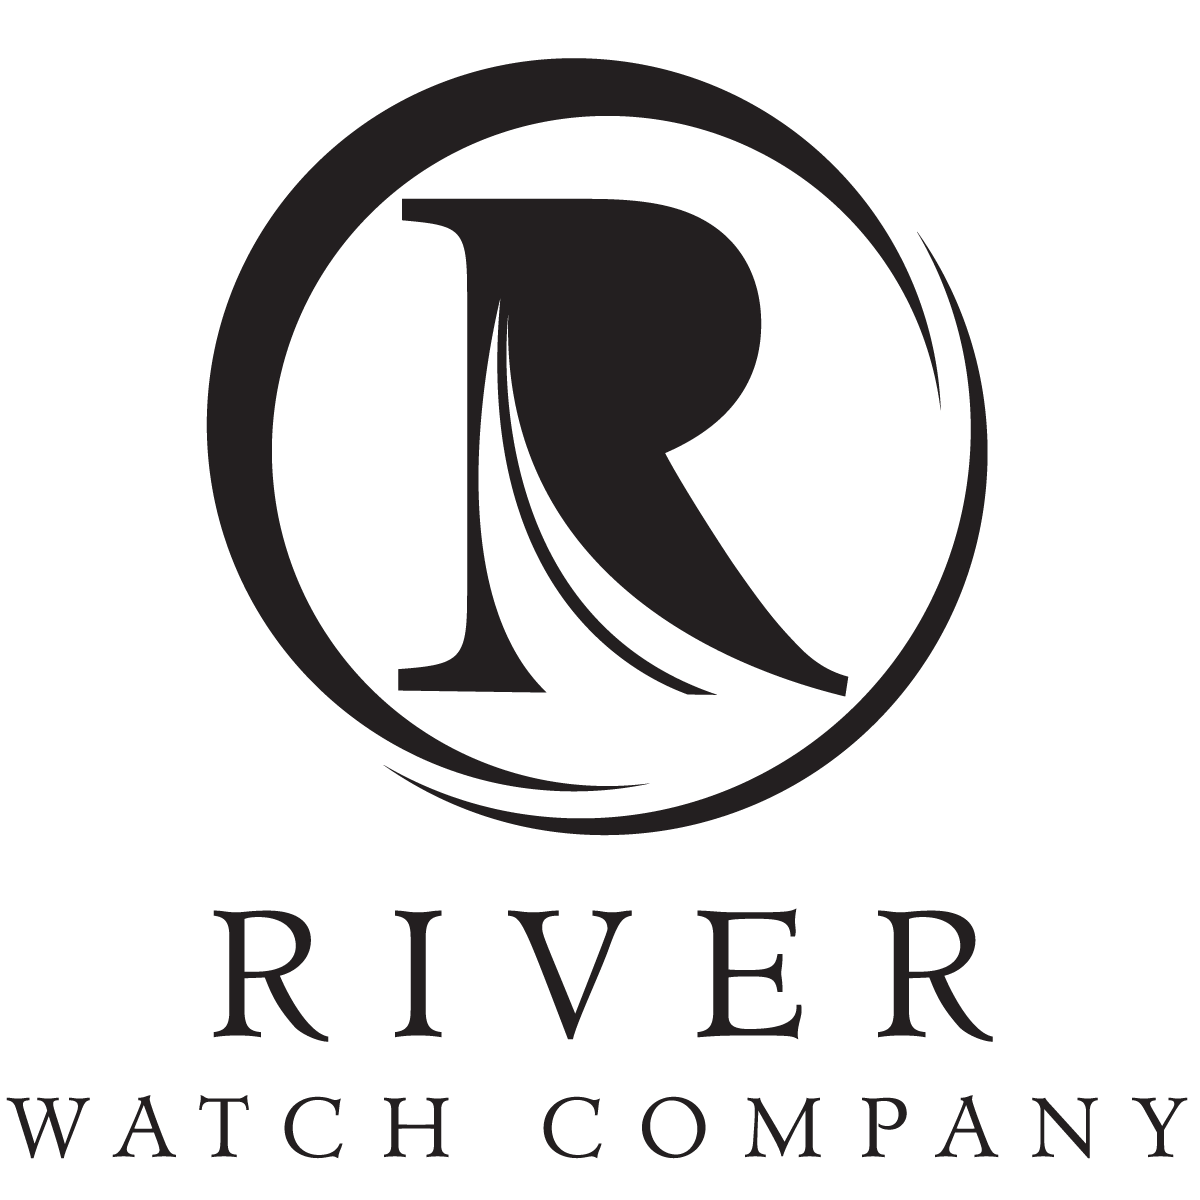 River Watch Company